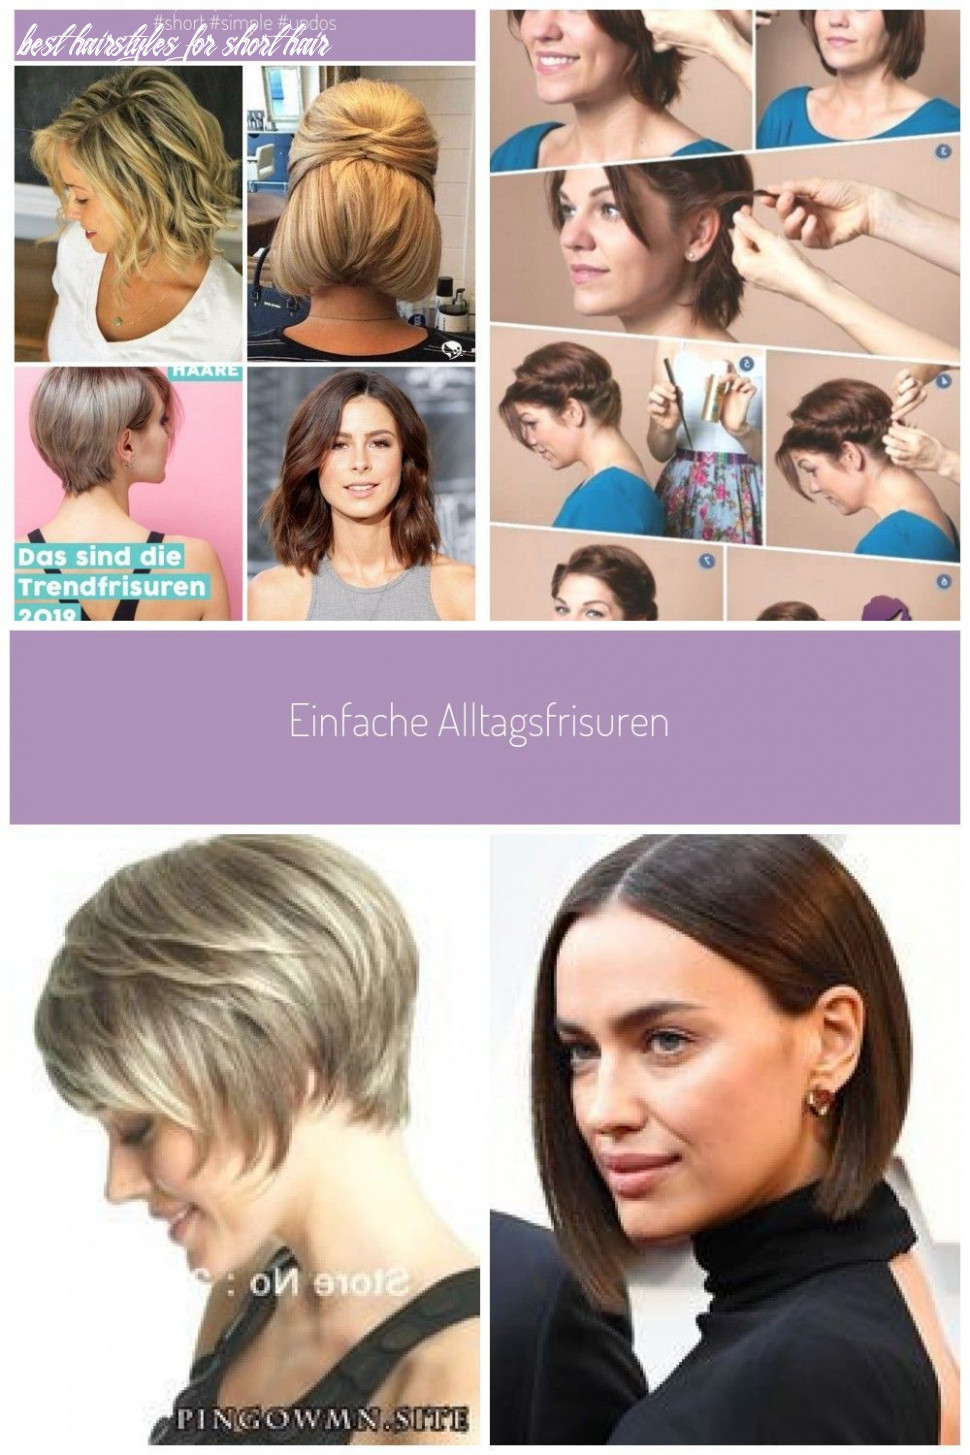 Simple everyday hairstyles for short hair, #hairstyles #hairstyle